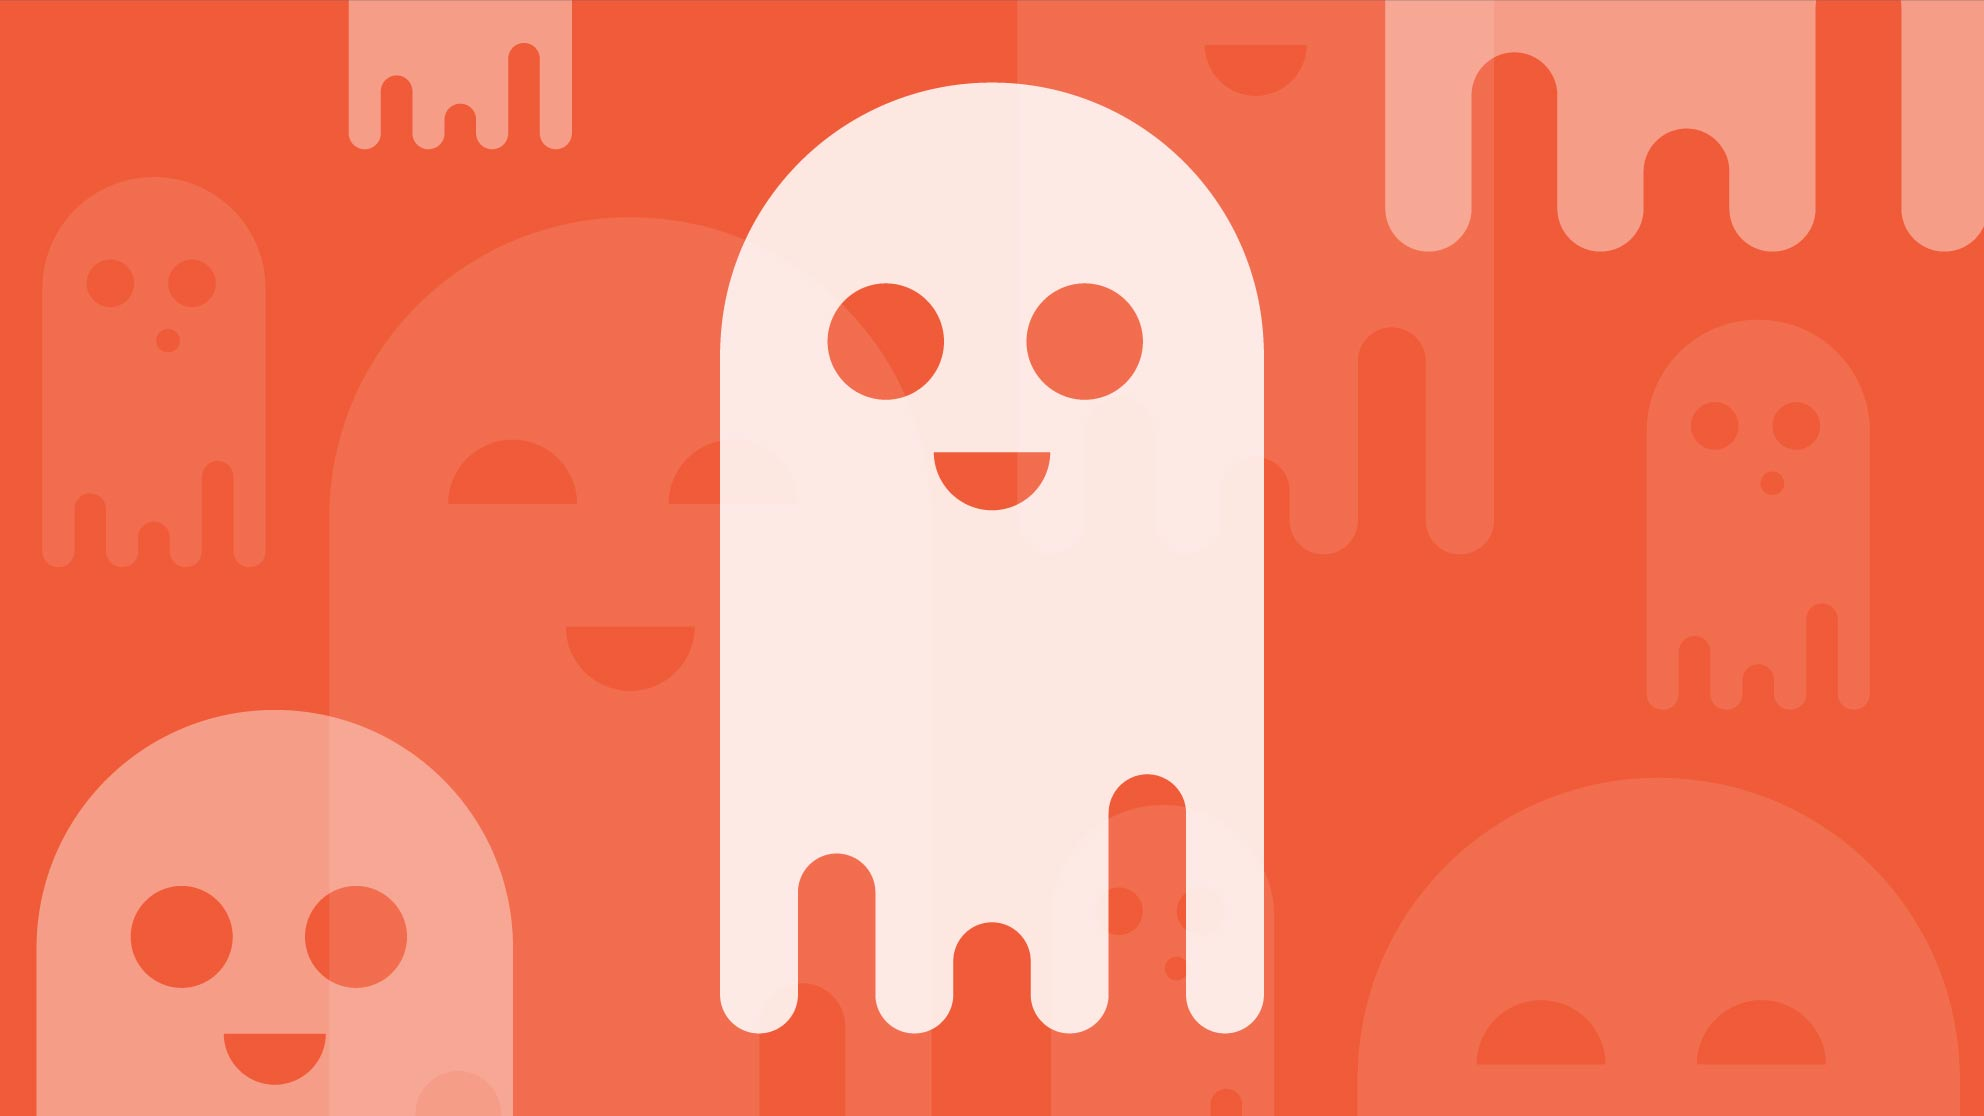 Cartoon ghost on an orange background for Halloween Fun Fest event